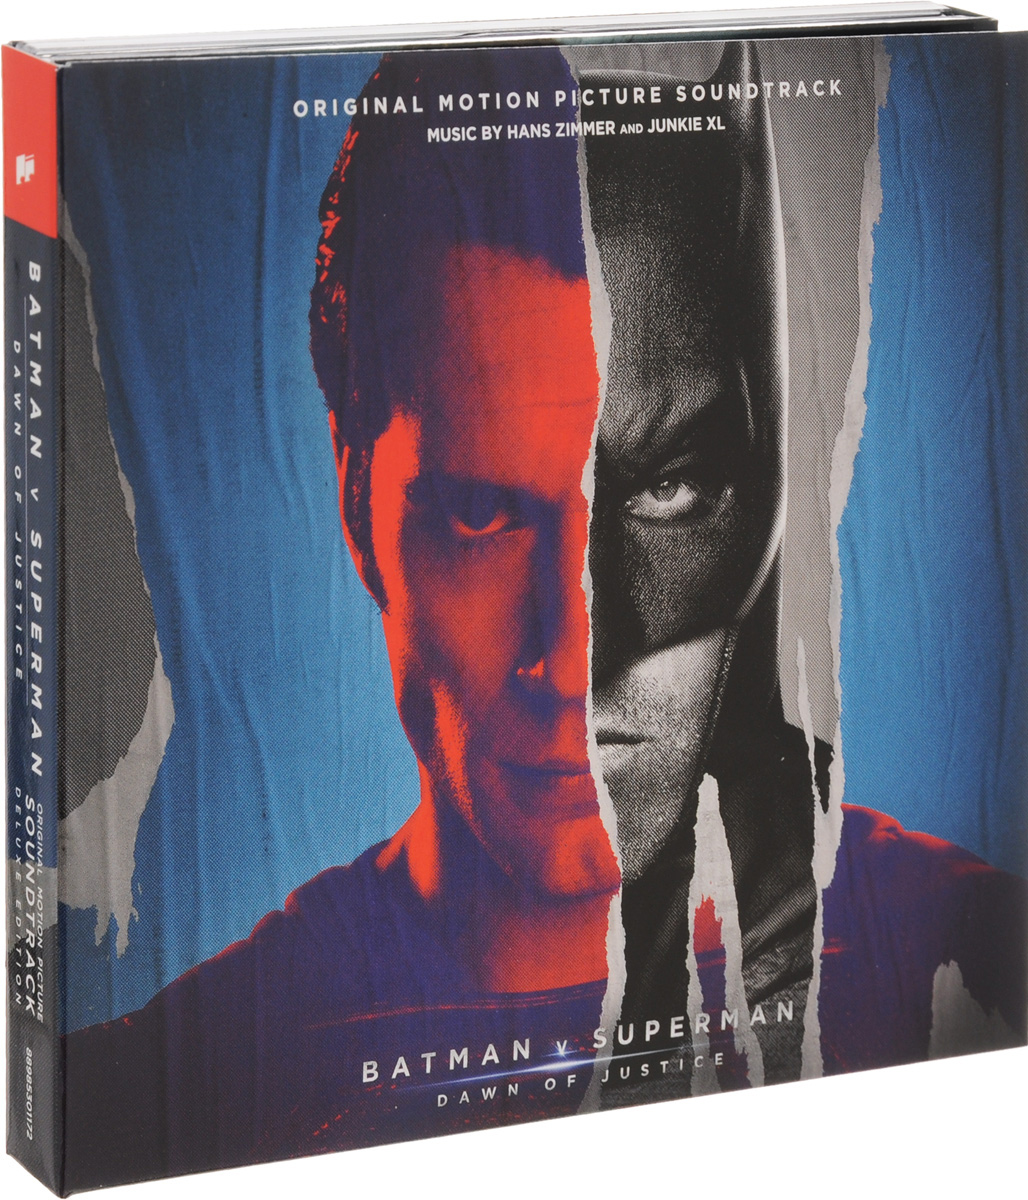 Hans Zimmer, Junkie XL. Batman V Superman. Dawn Of Justice. Original Motion Picture Soundtrack. Deluxe Edition (2 CD)